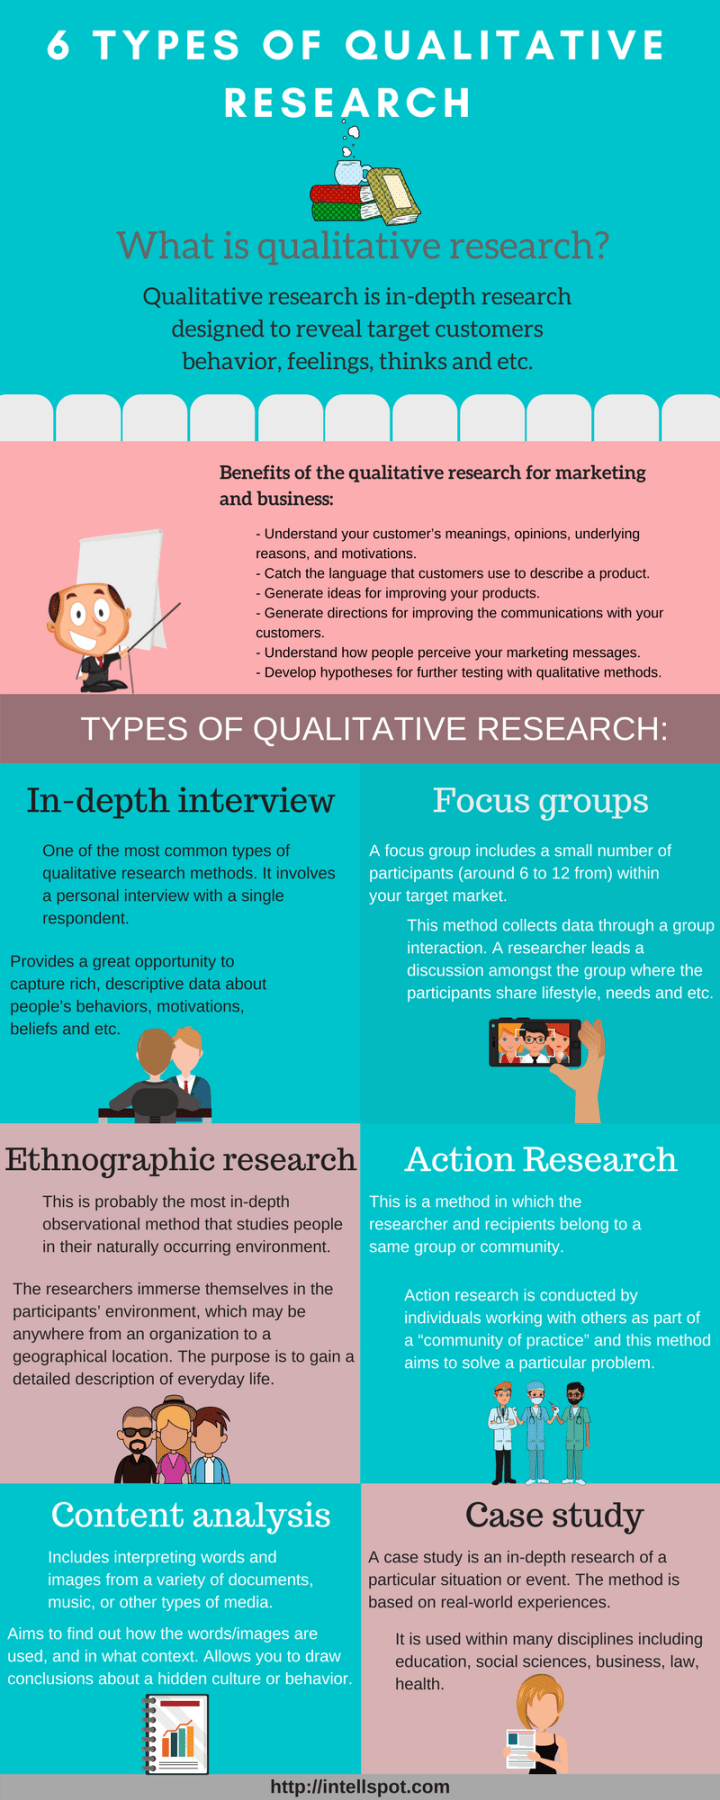 Types of Qualitative Research Infographic